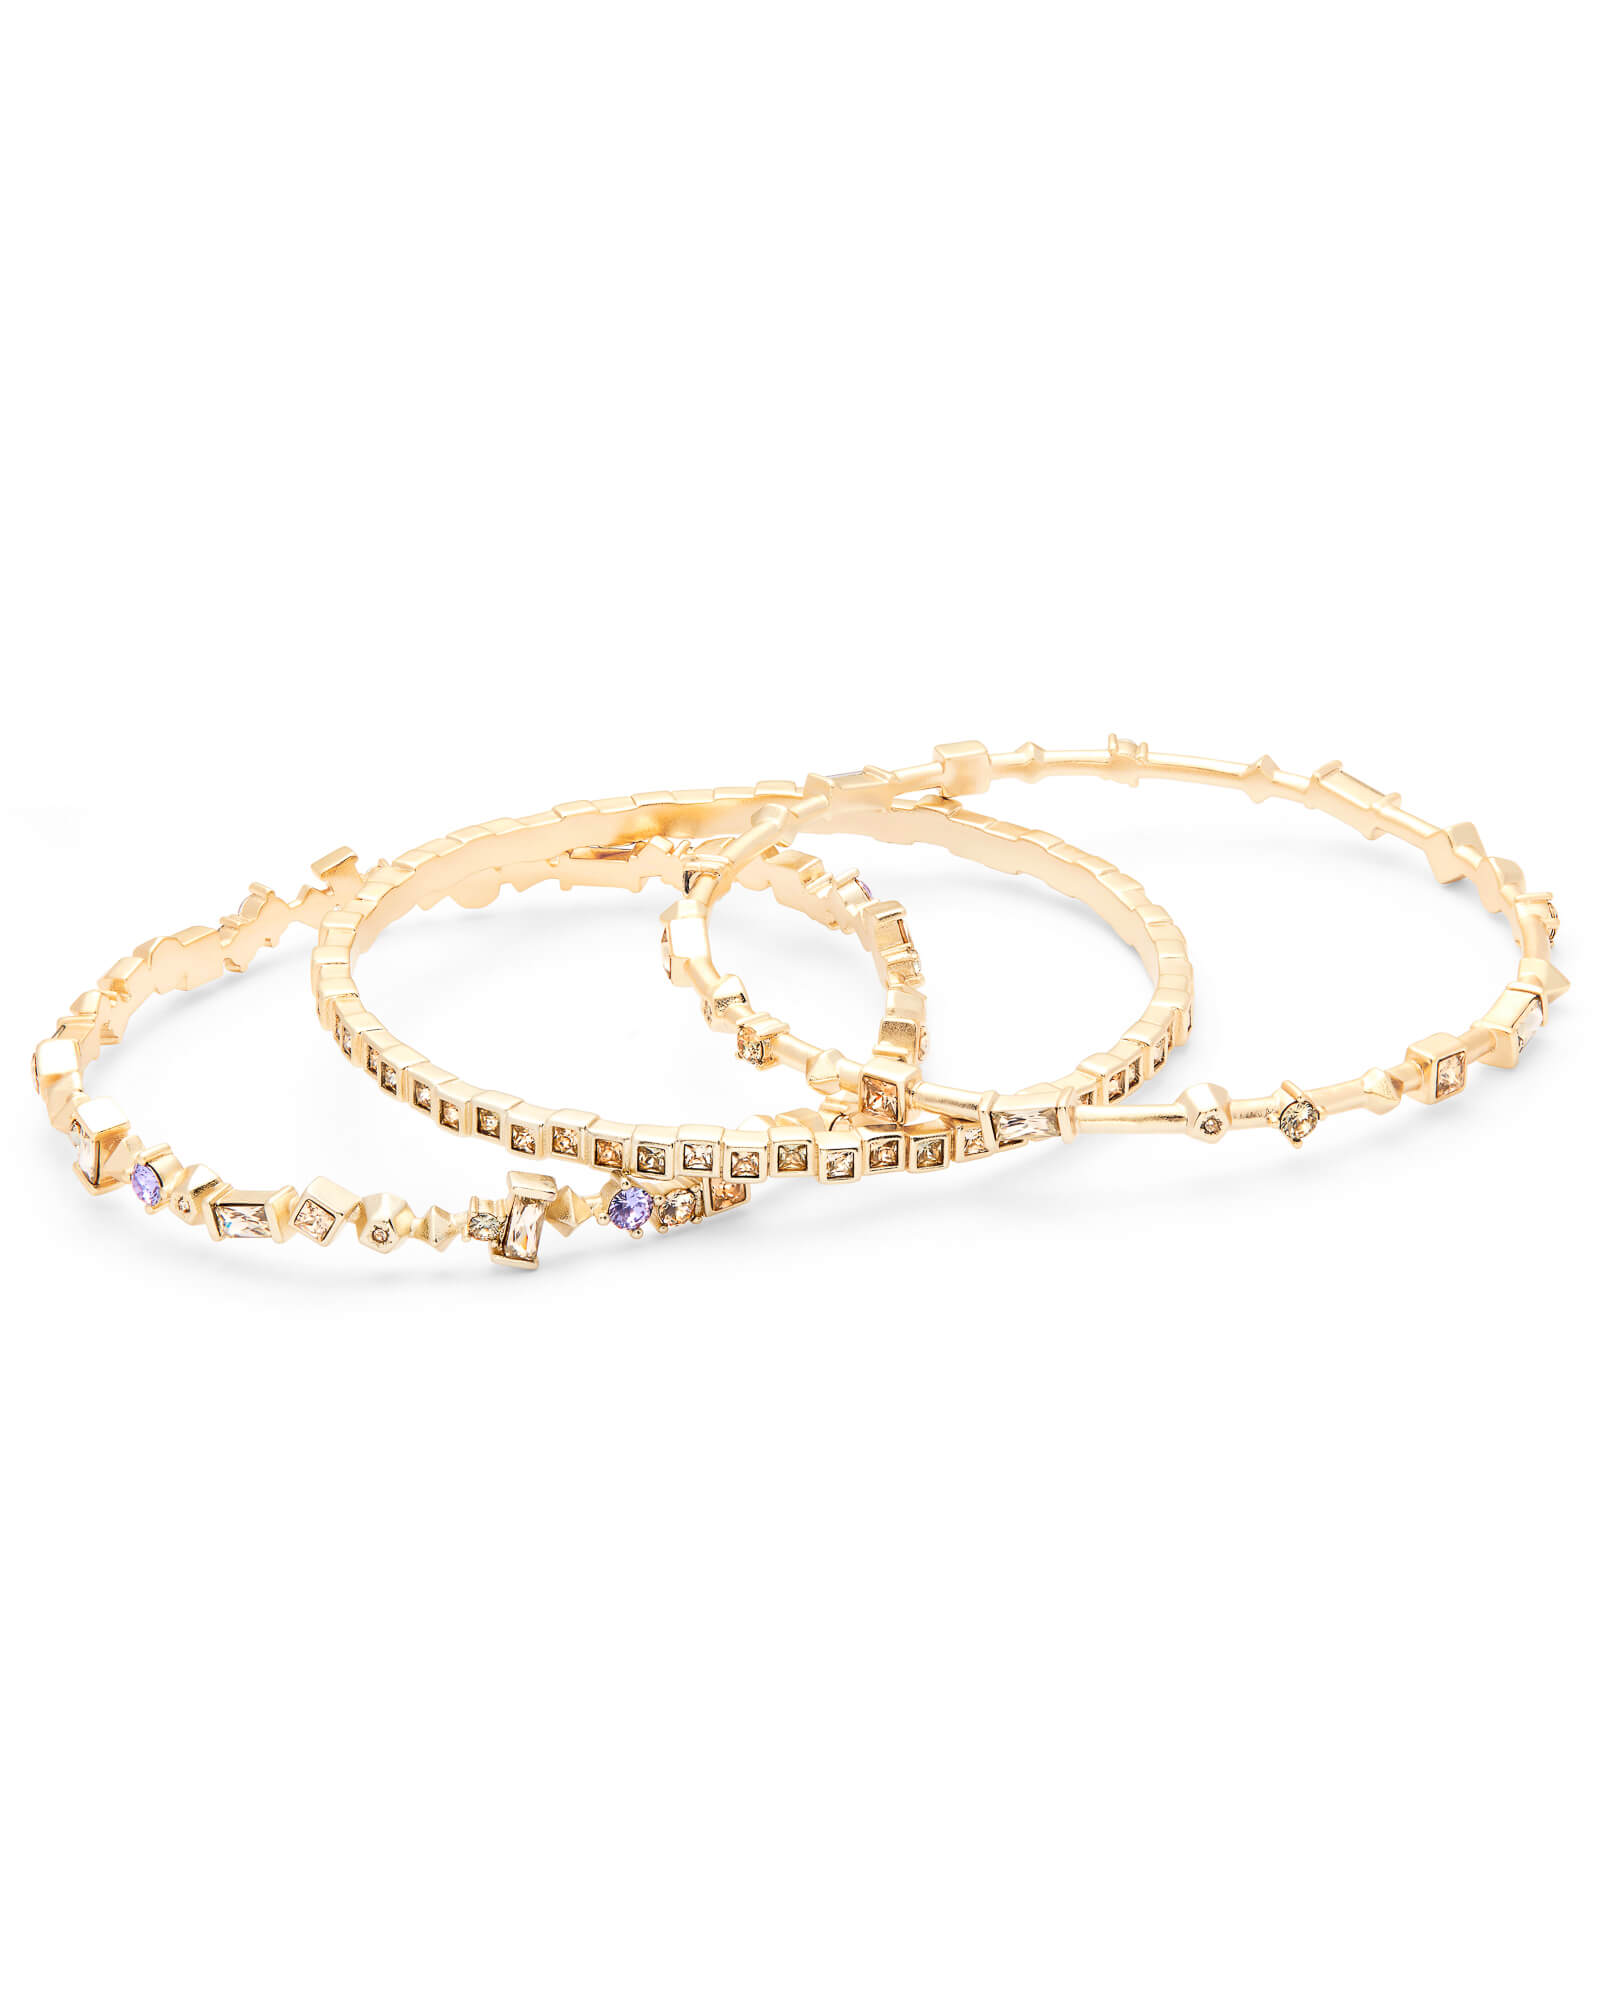 Malia Gold Bangle Bracelet Set in Smoky Mix